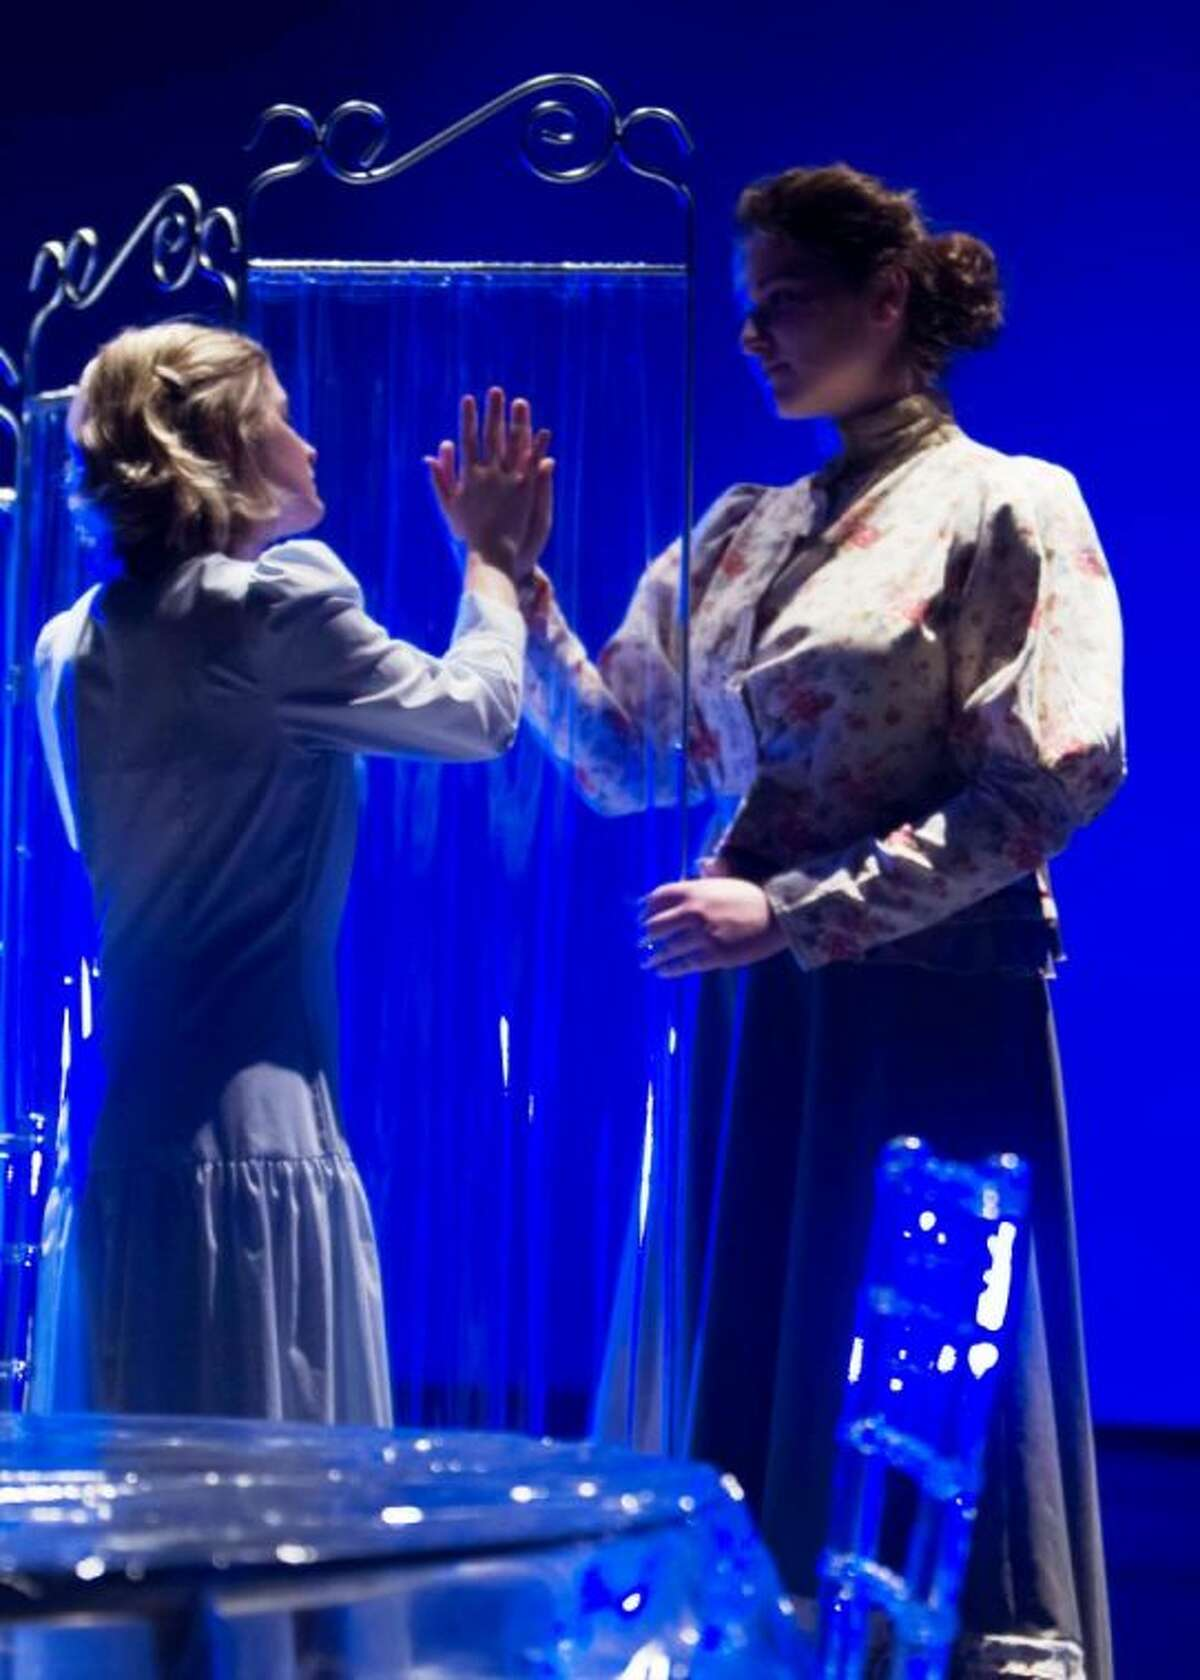 FRIDAY-SATURDAY: 'THE GLASS MENAGERIE' When:7 p.m., Oct. 28-29Where:Silsbee Little Theater, 106 North 6th, SilsbeeCost:$15 adults, $5 students